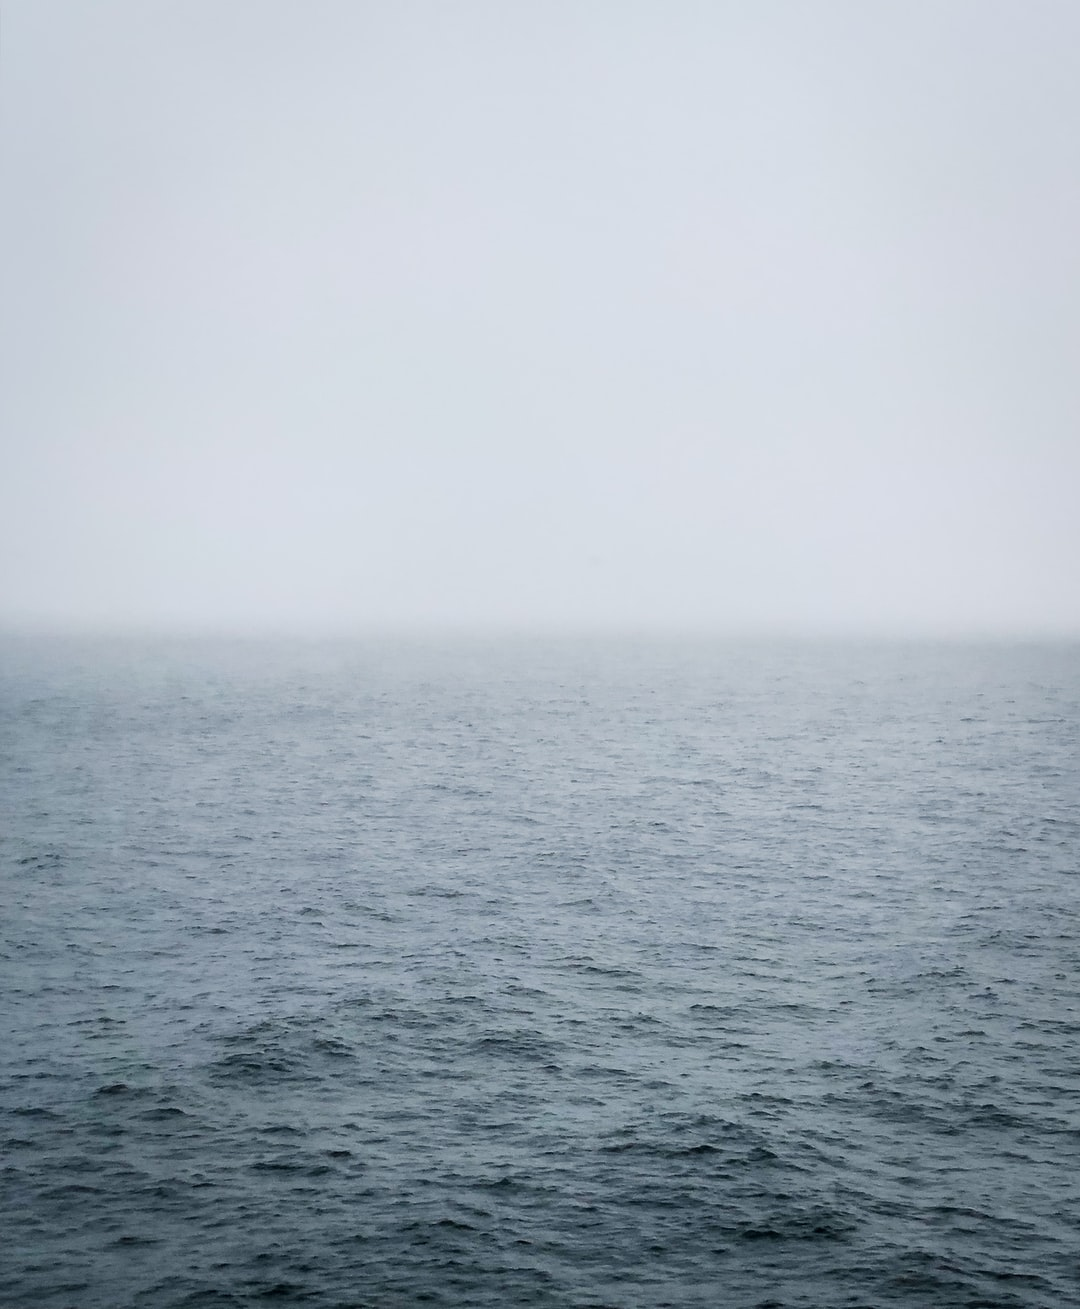 Mist in the middle of the Baltic Sea